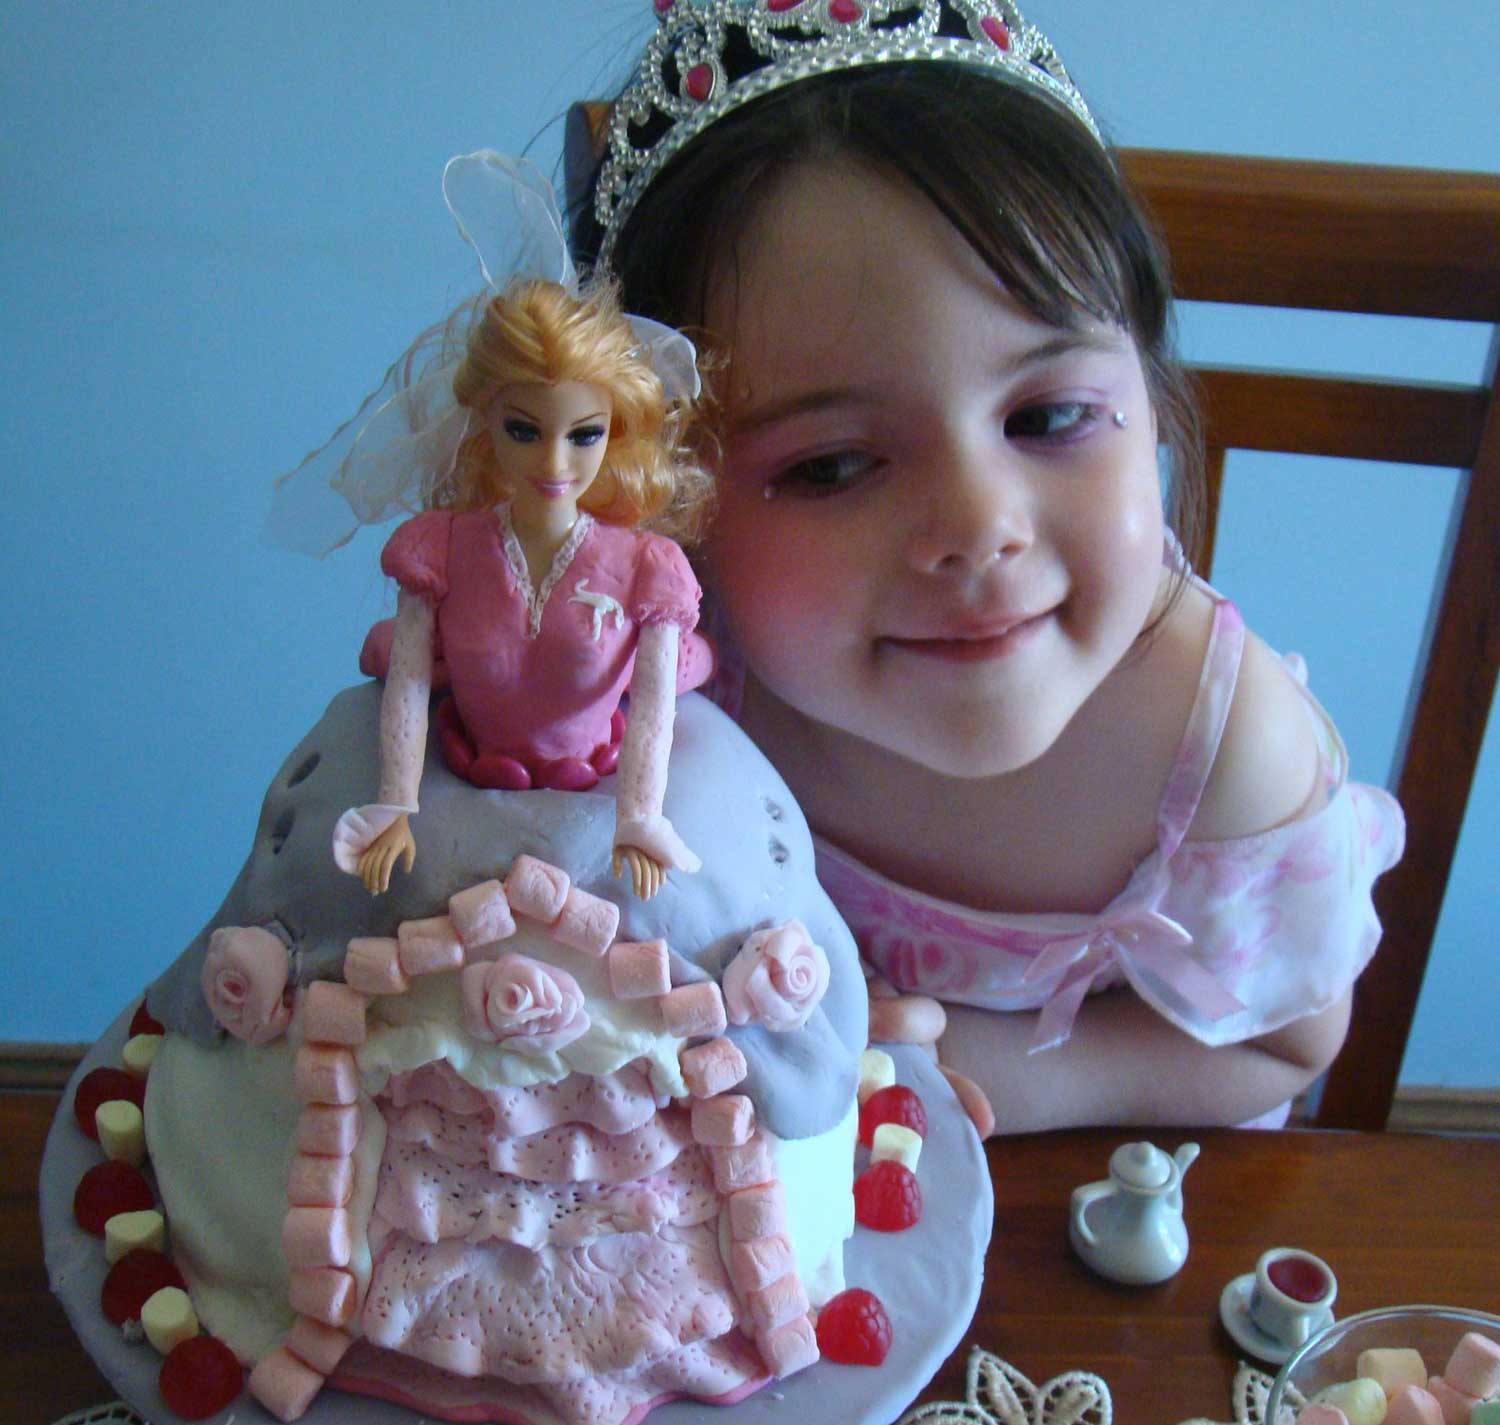 Tookii things to do with kids with her doll birthday cake one of the activities for kids